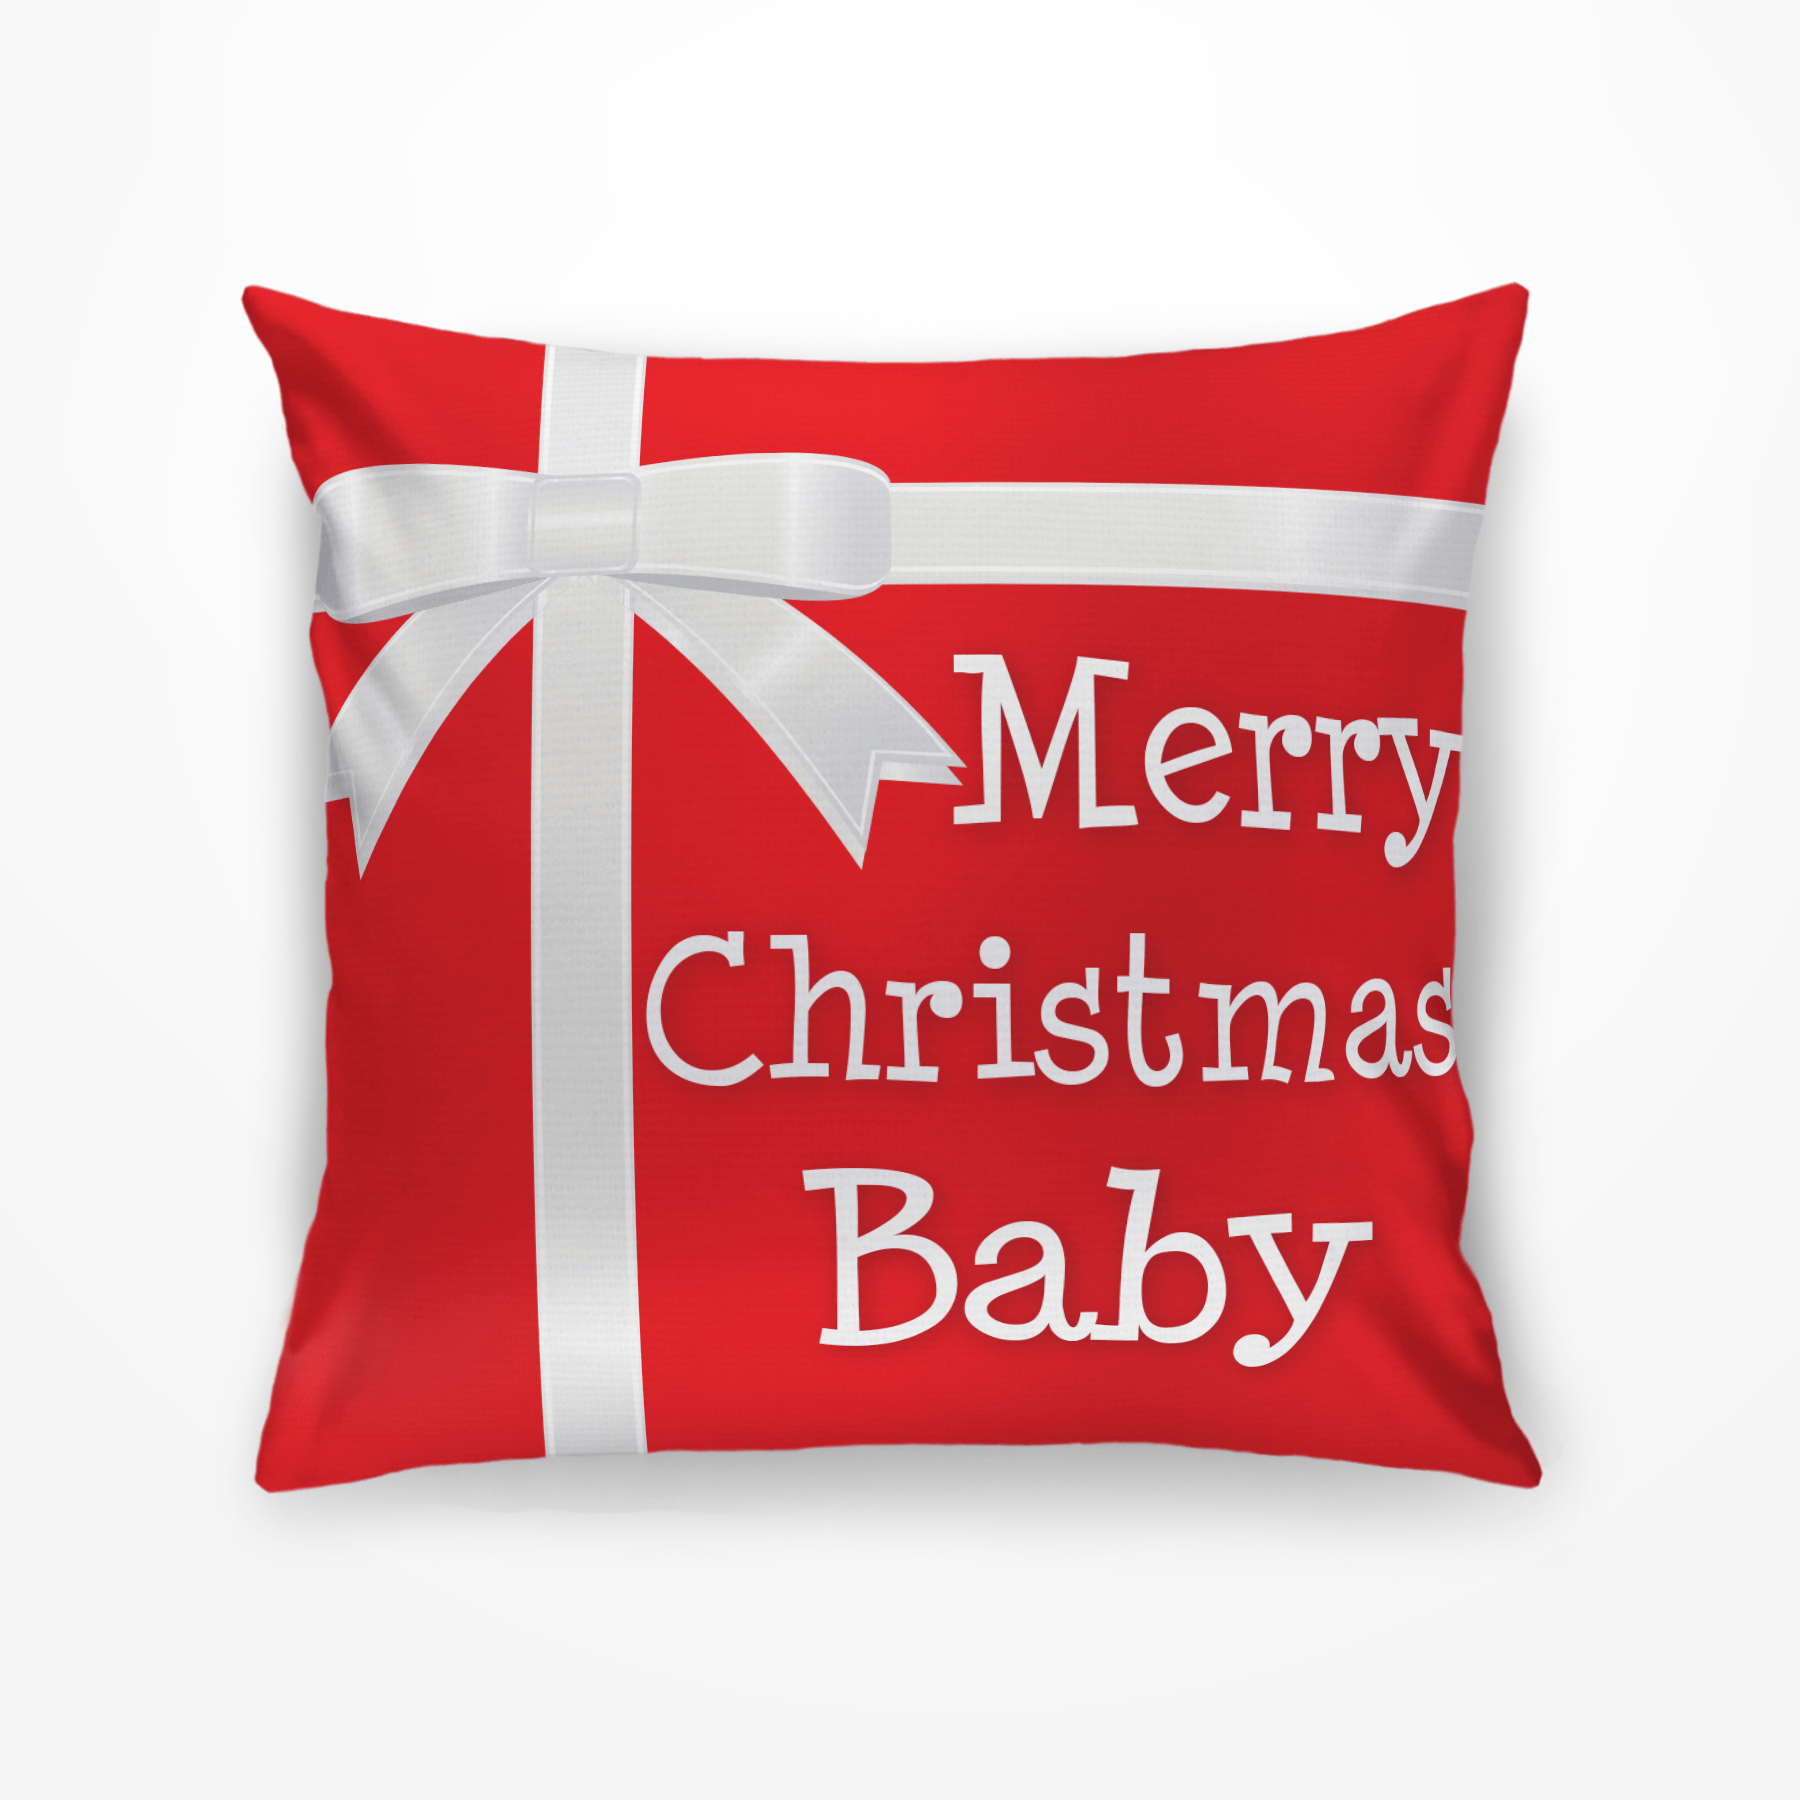 Merry Christmas Pillow.